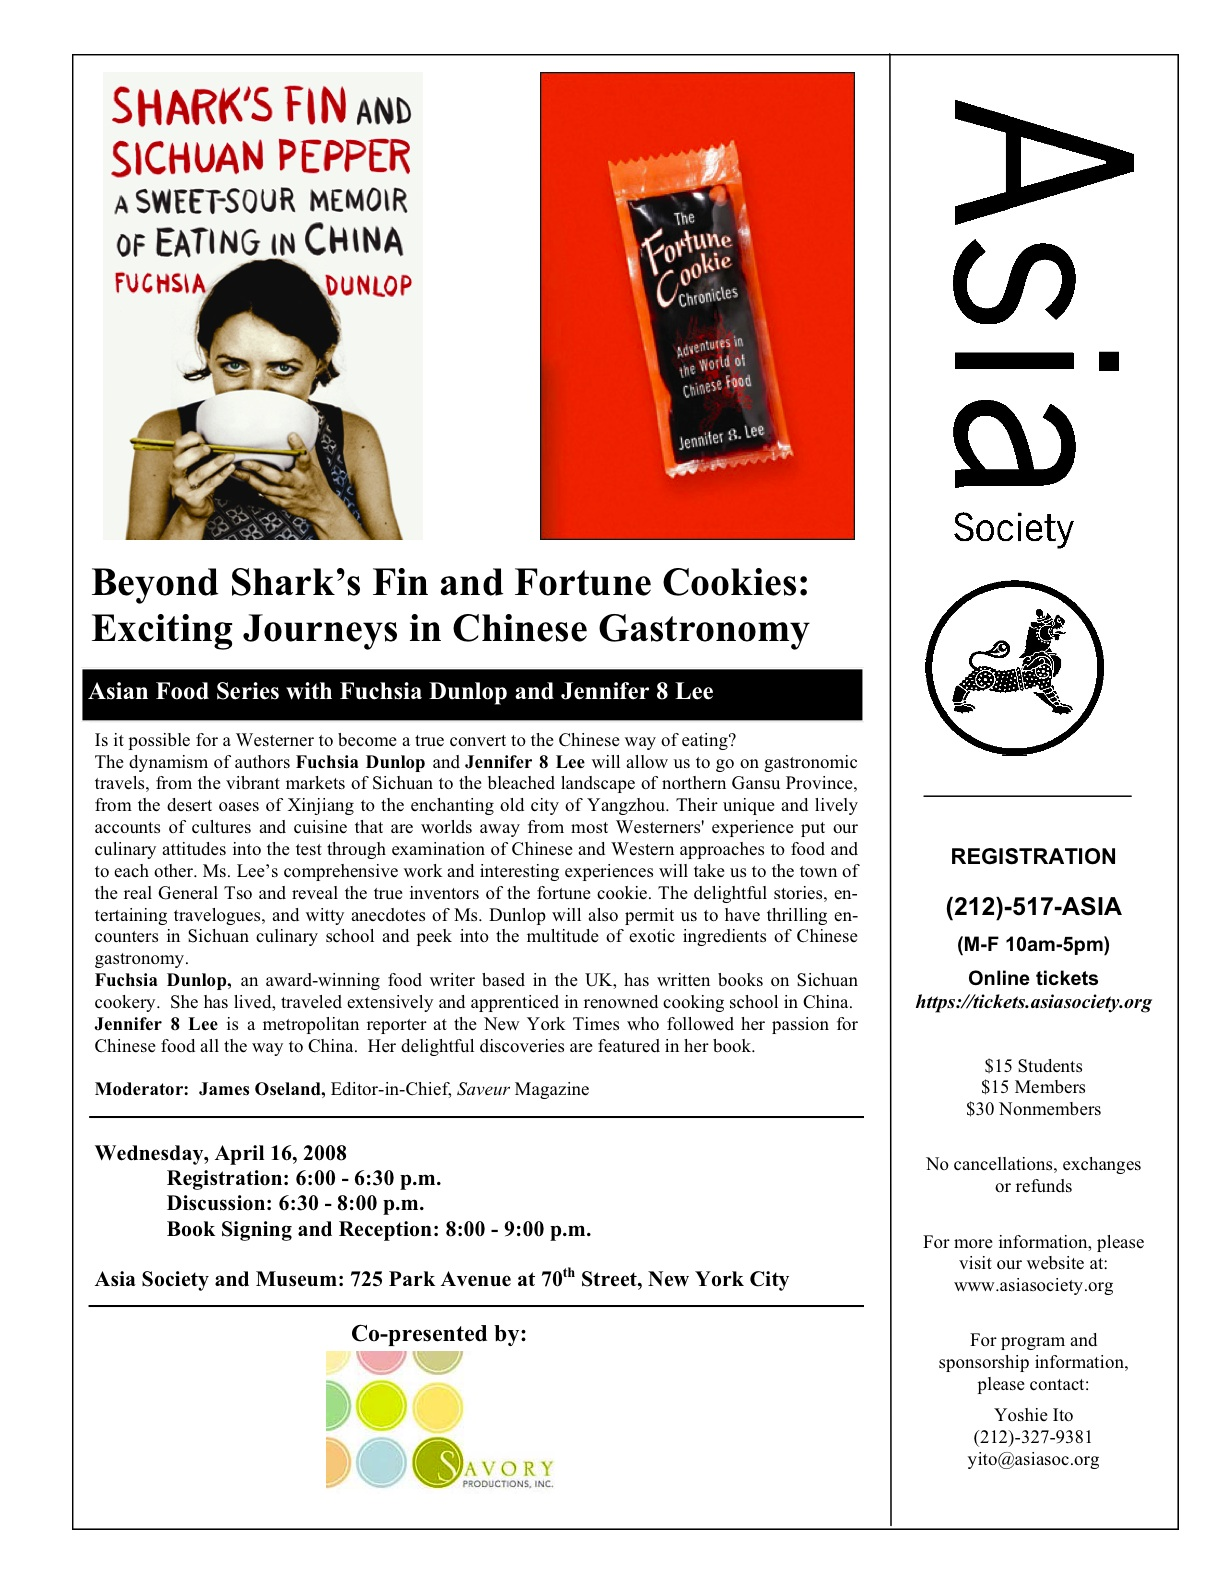 Asia Society April 16 event with Fucshia Dunlop and Jennifer 8. Lee flyer